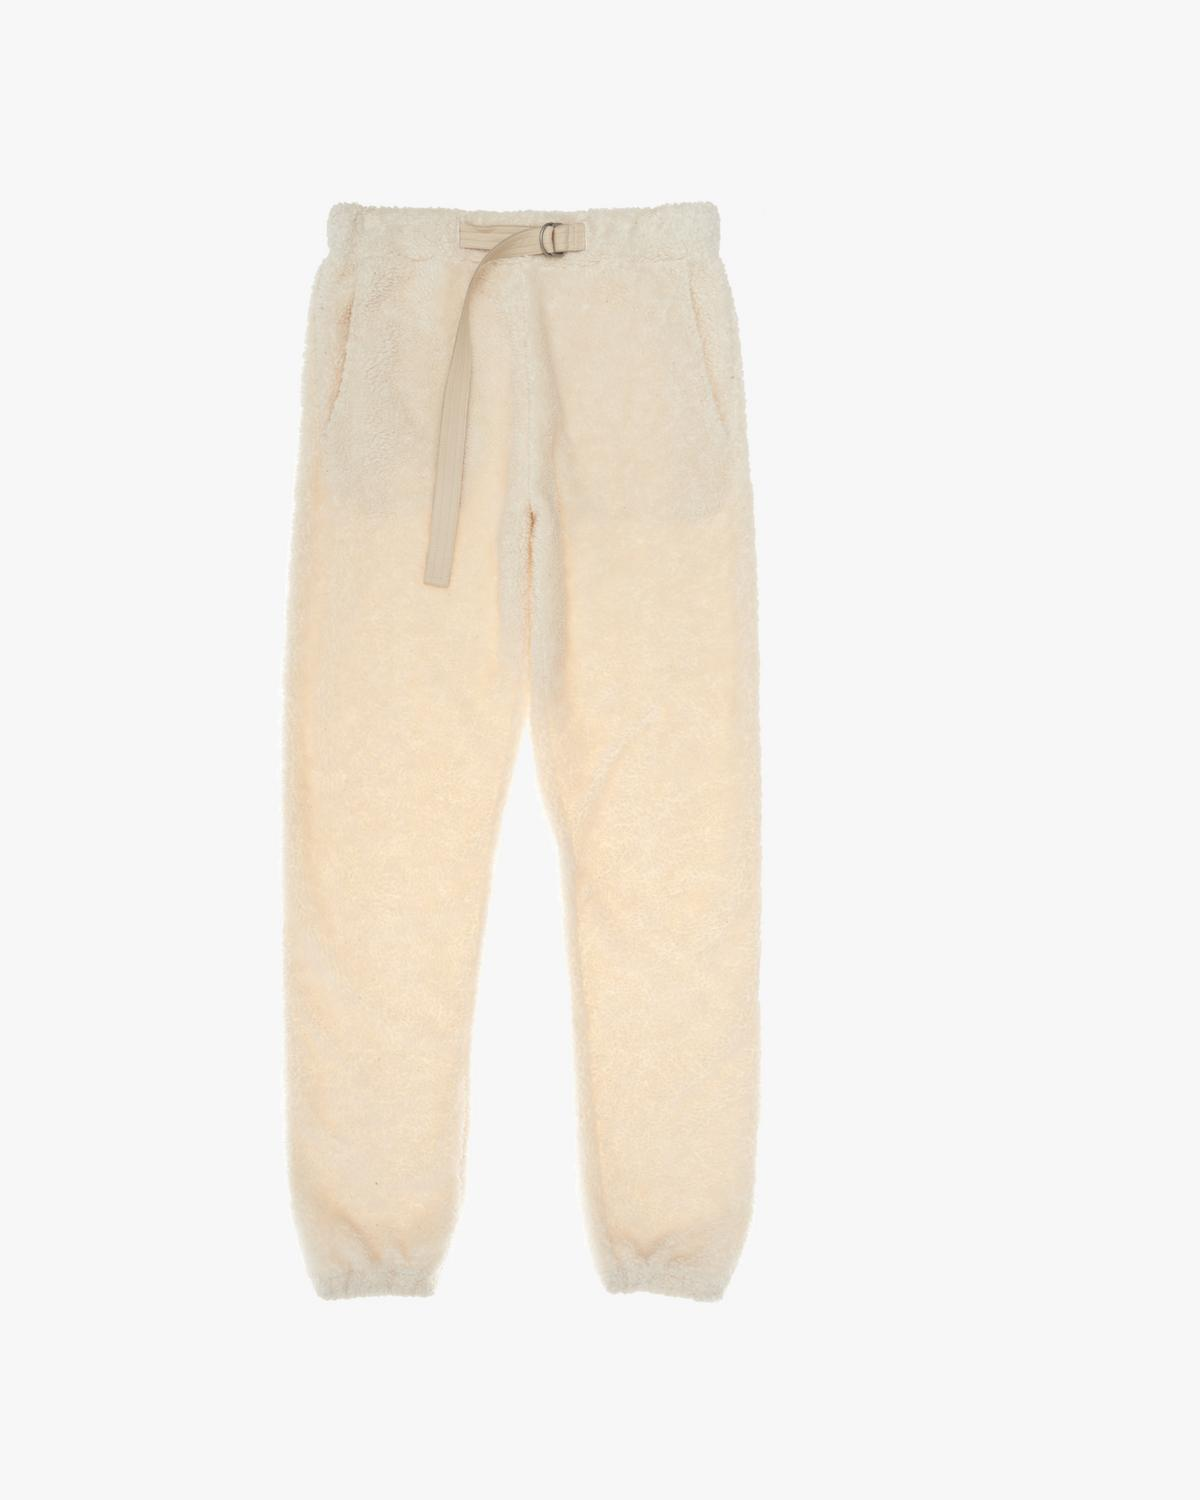 Shaggy Fleece Sweatpant